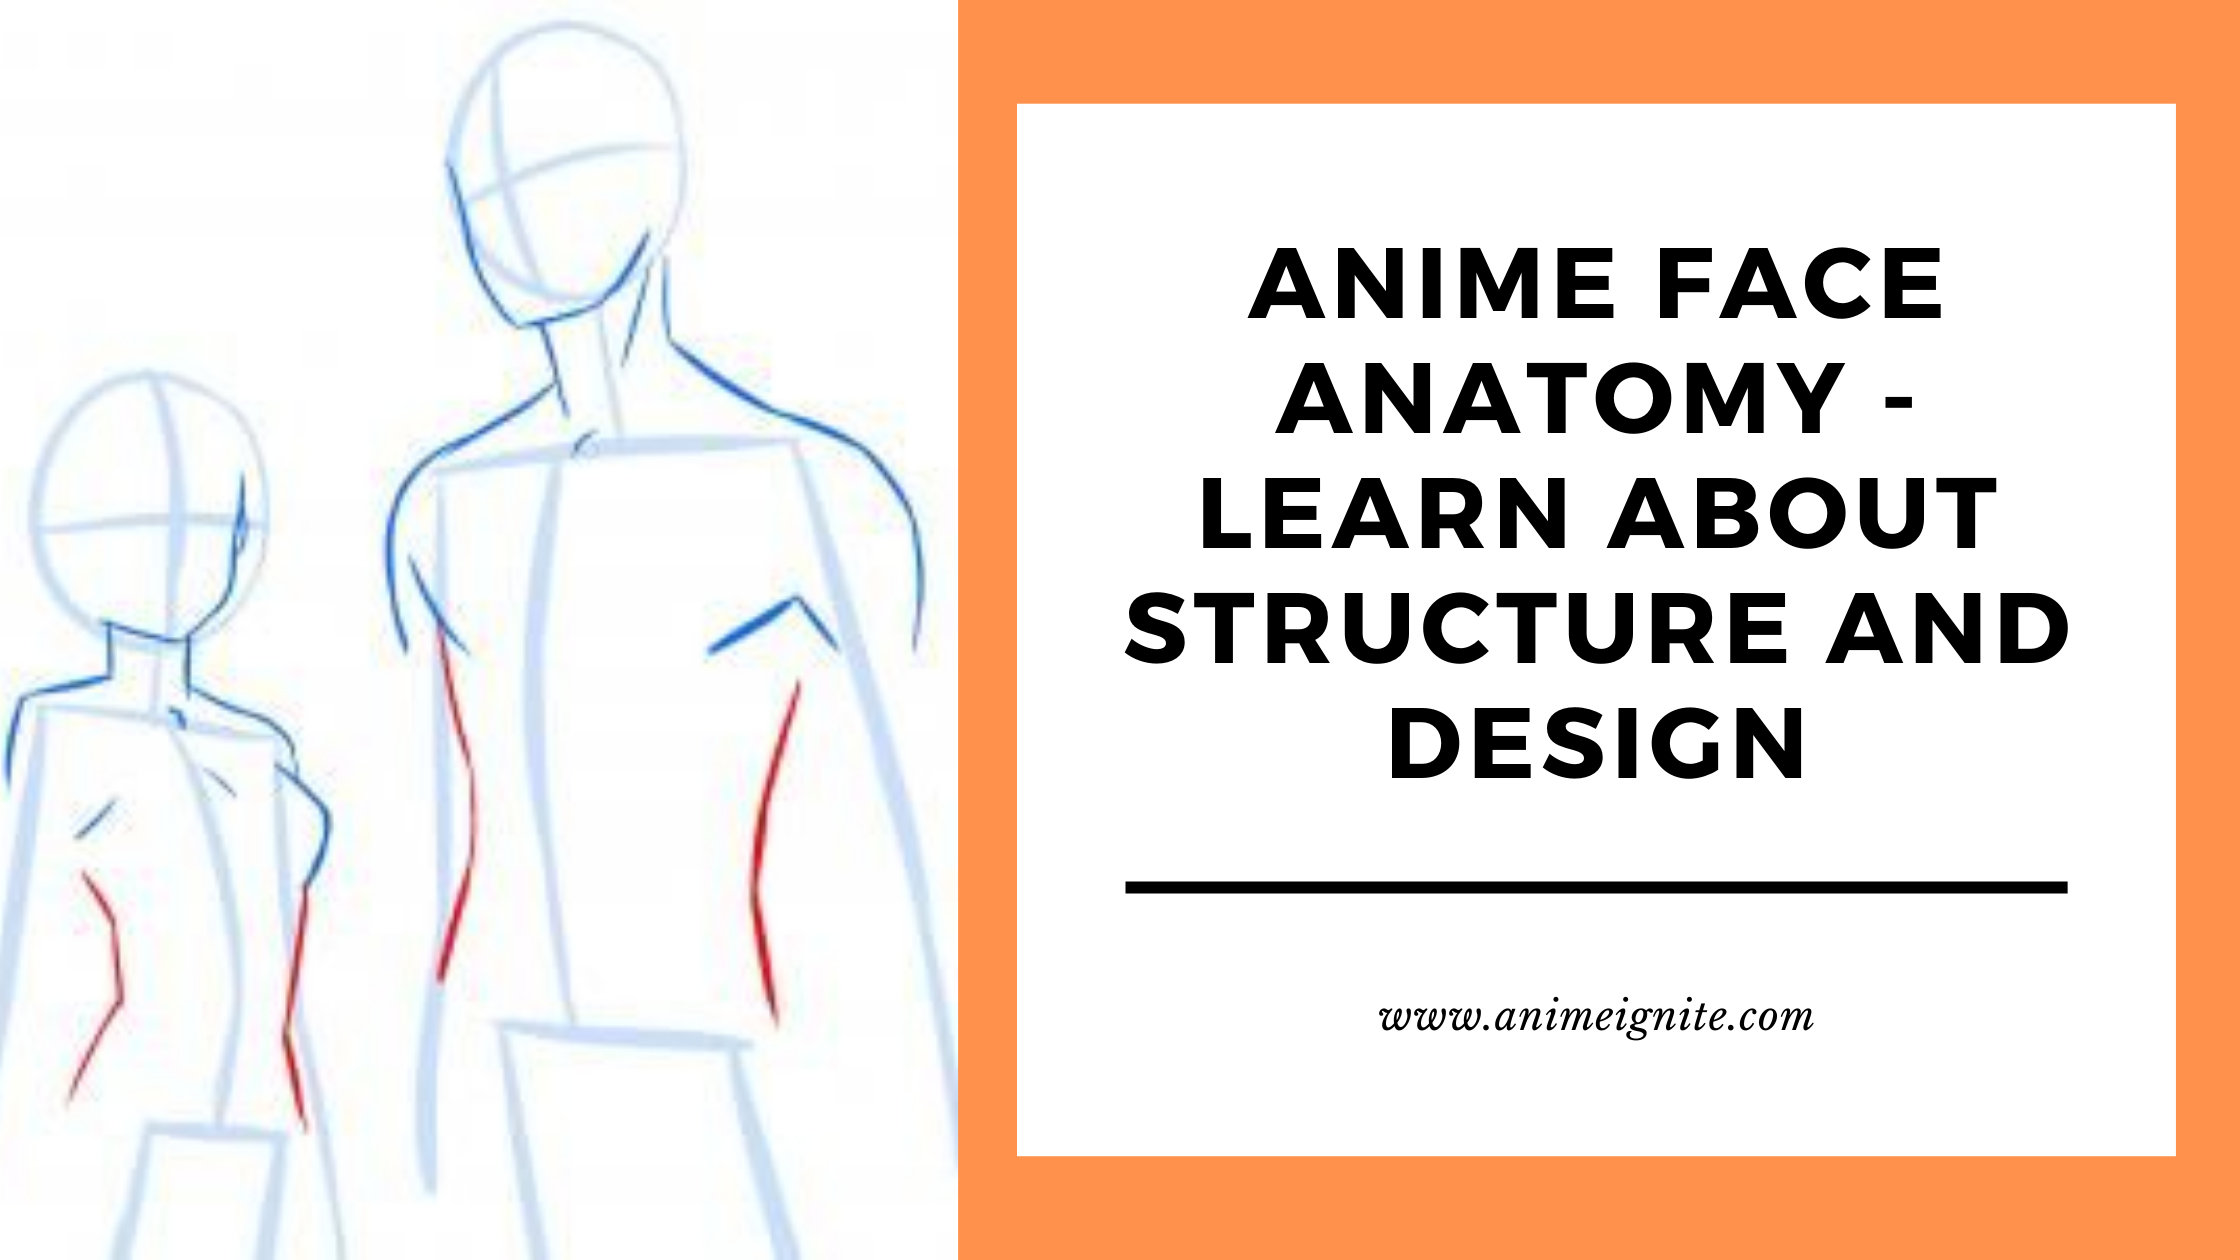 Anime Face Anatomy - Learn all about Structure and Design